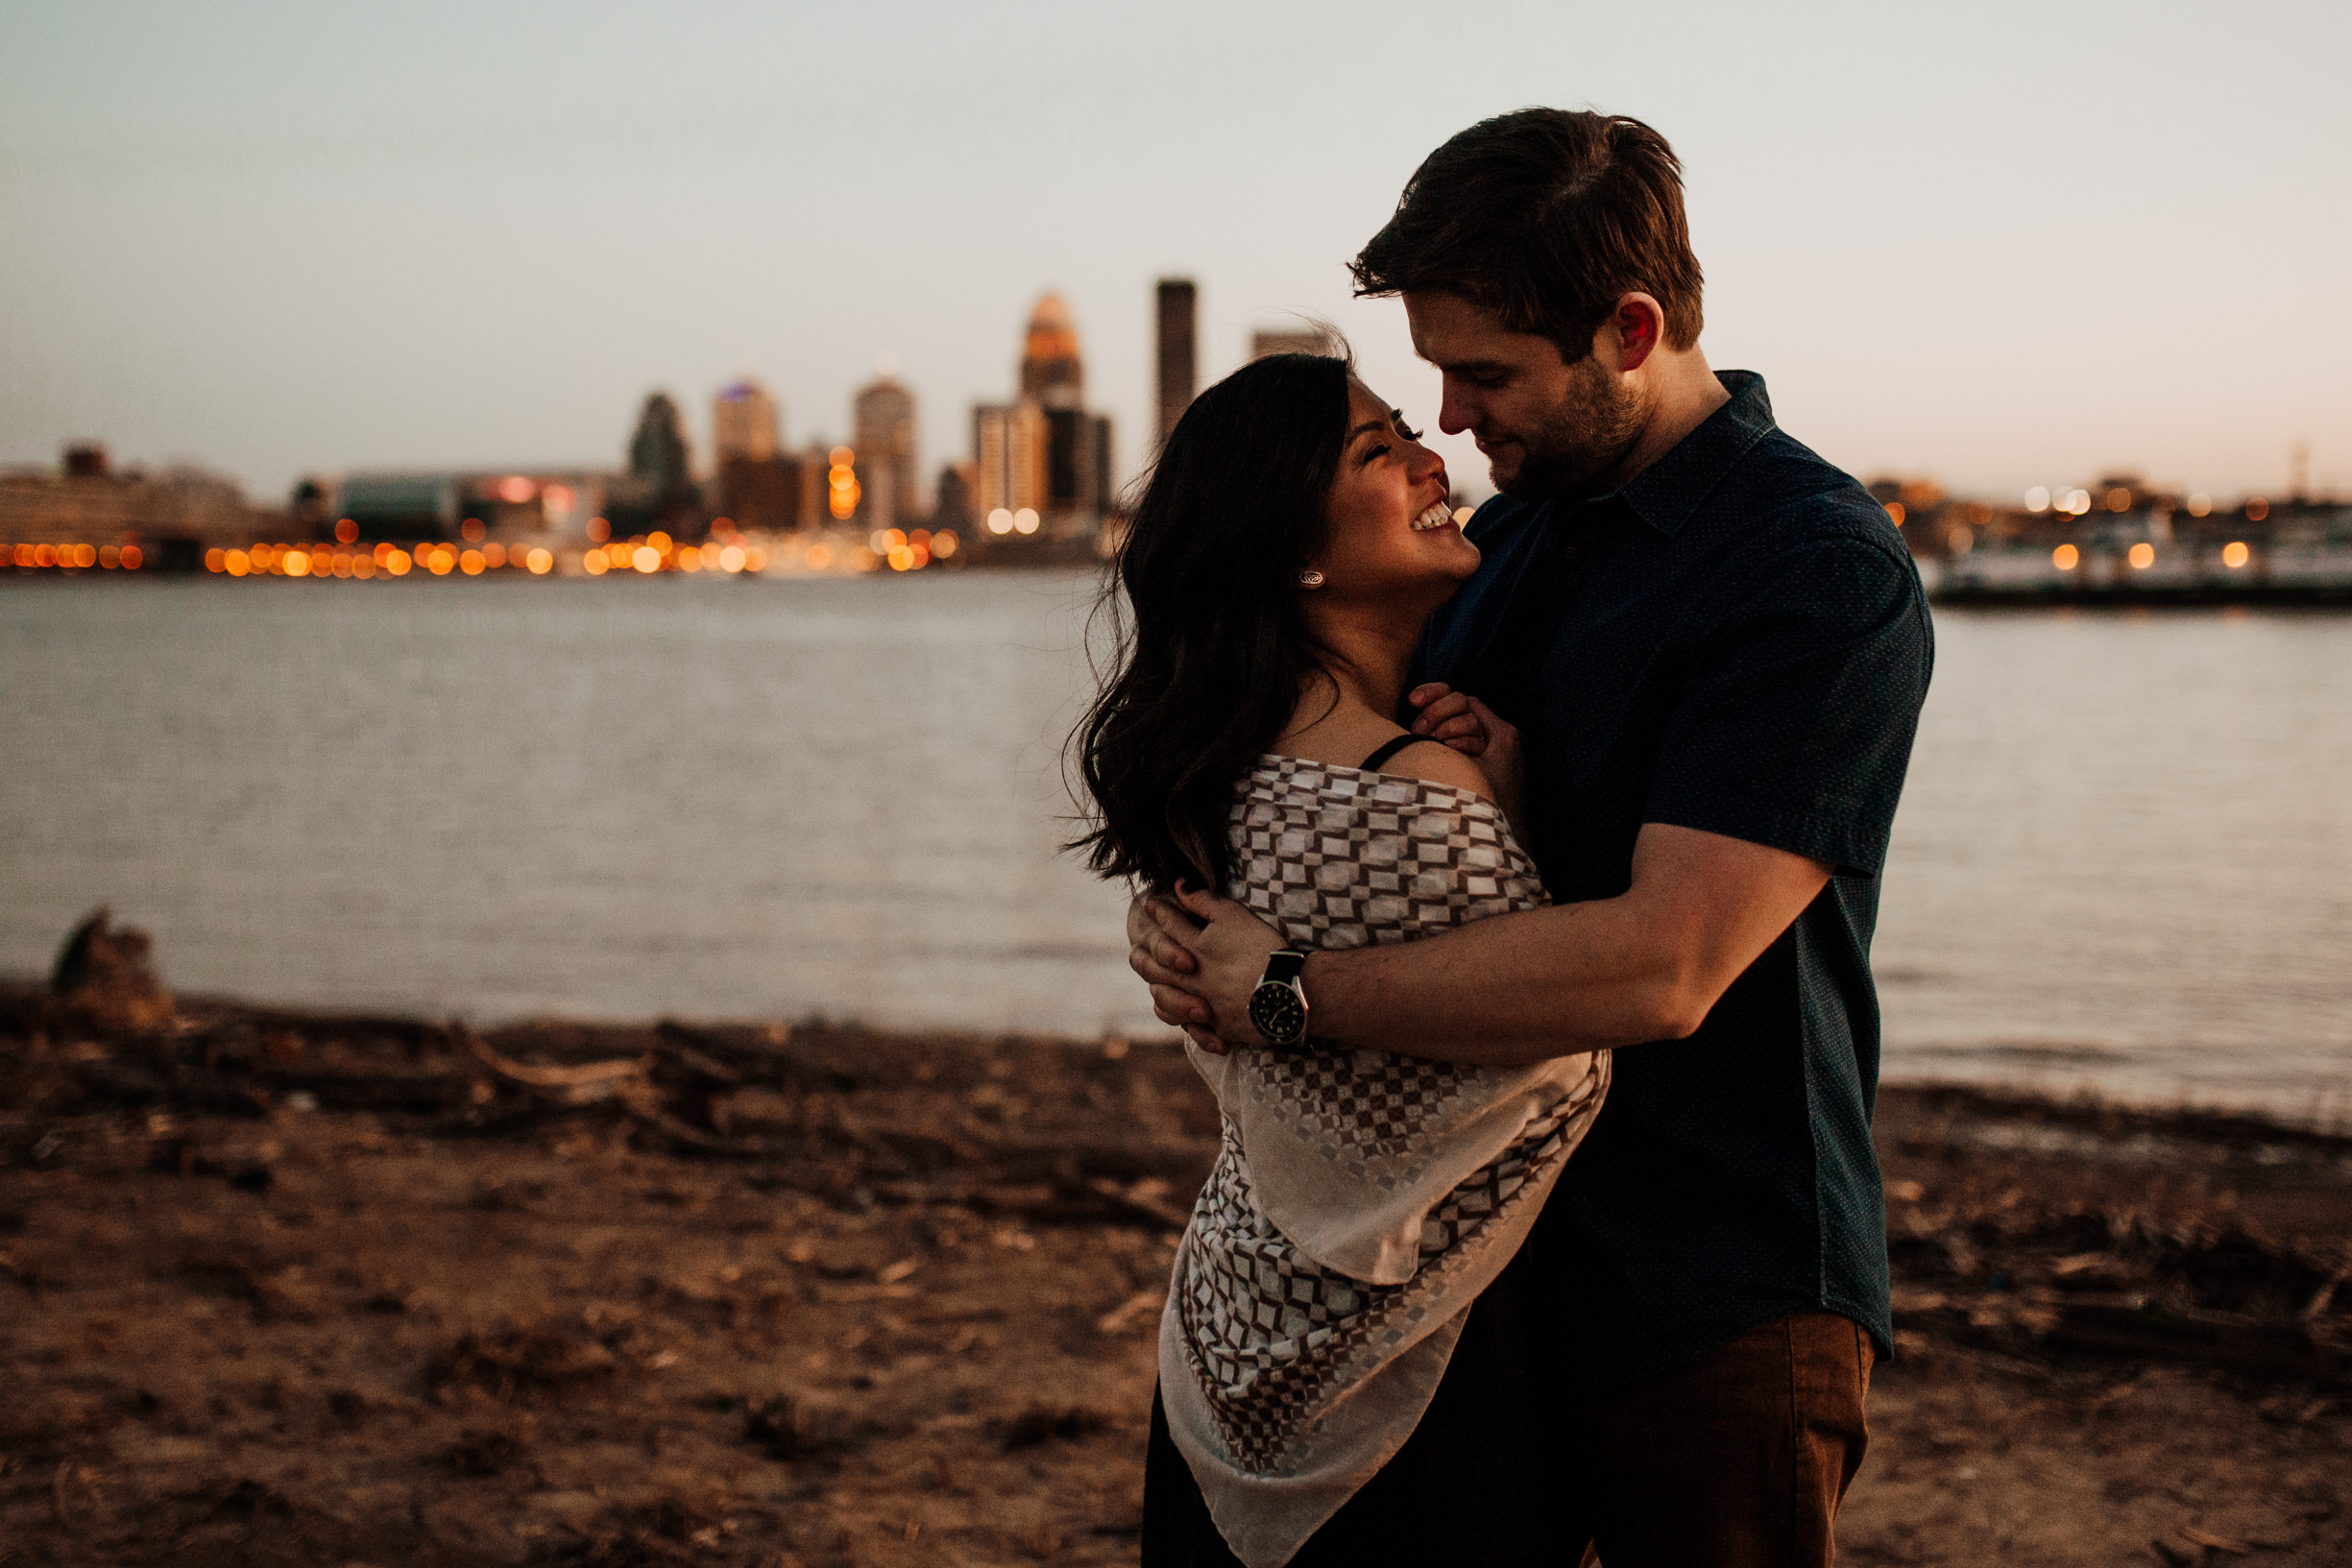 louisville-engagement-photographer-crystal-ludwick-photo-tammy-and-caleb-engagement-photography (28 of 32).jpg